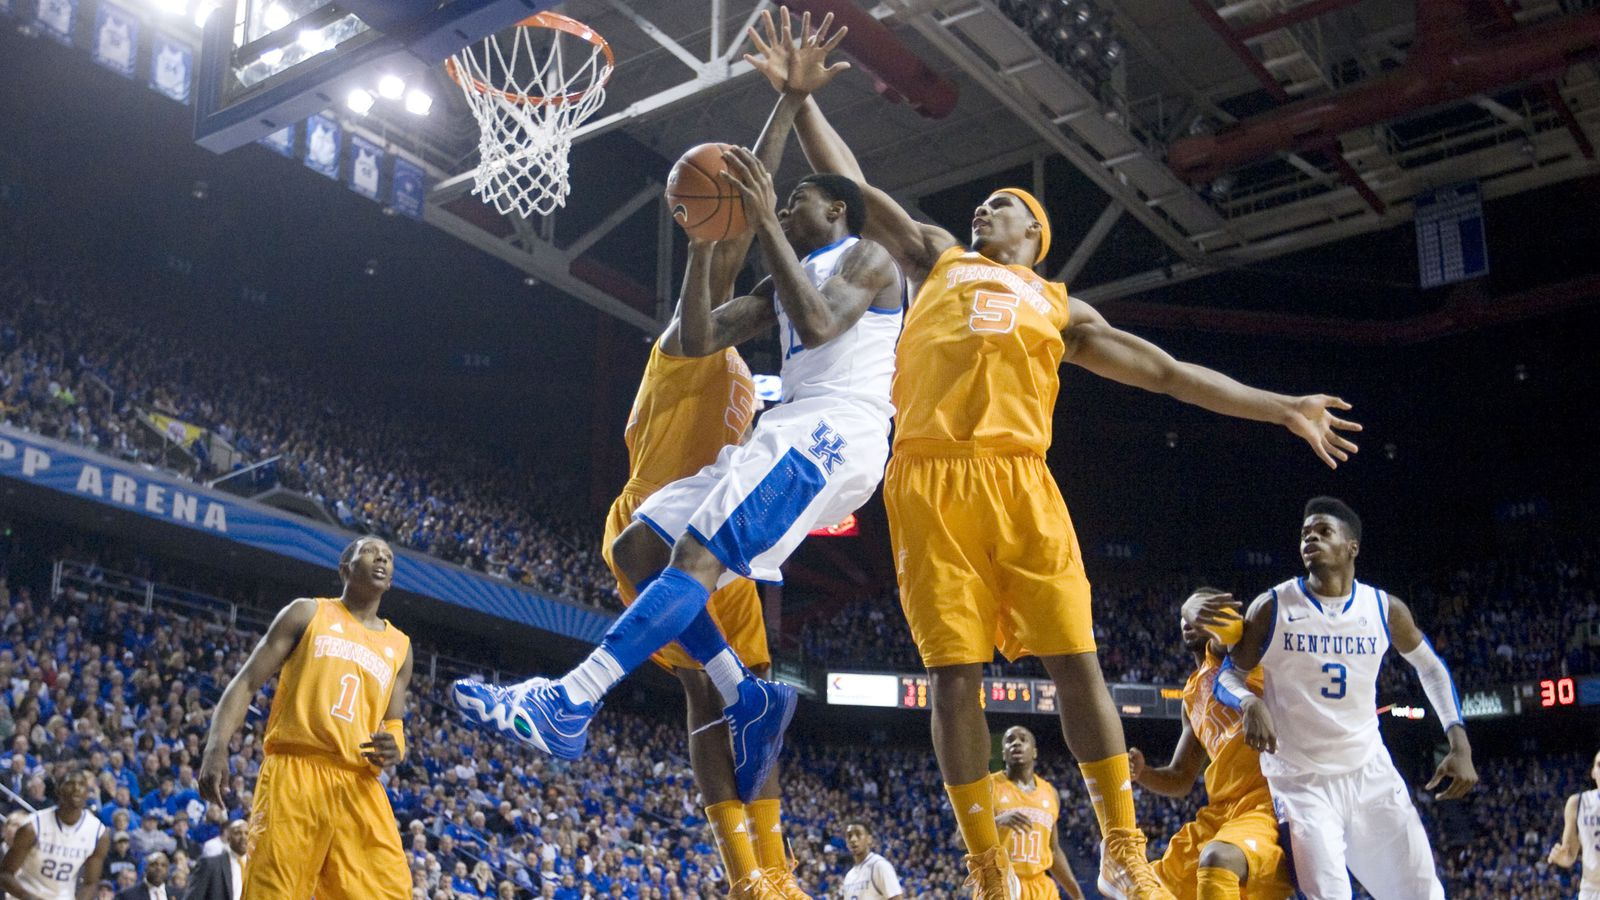 Uk Basketball: Tennessee Volunteers Vs. Kentucky Wildcats: Game Thread